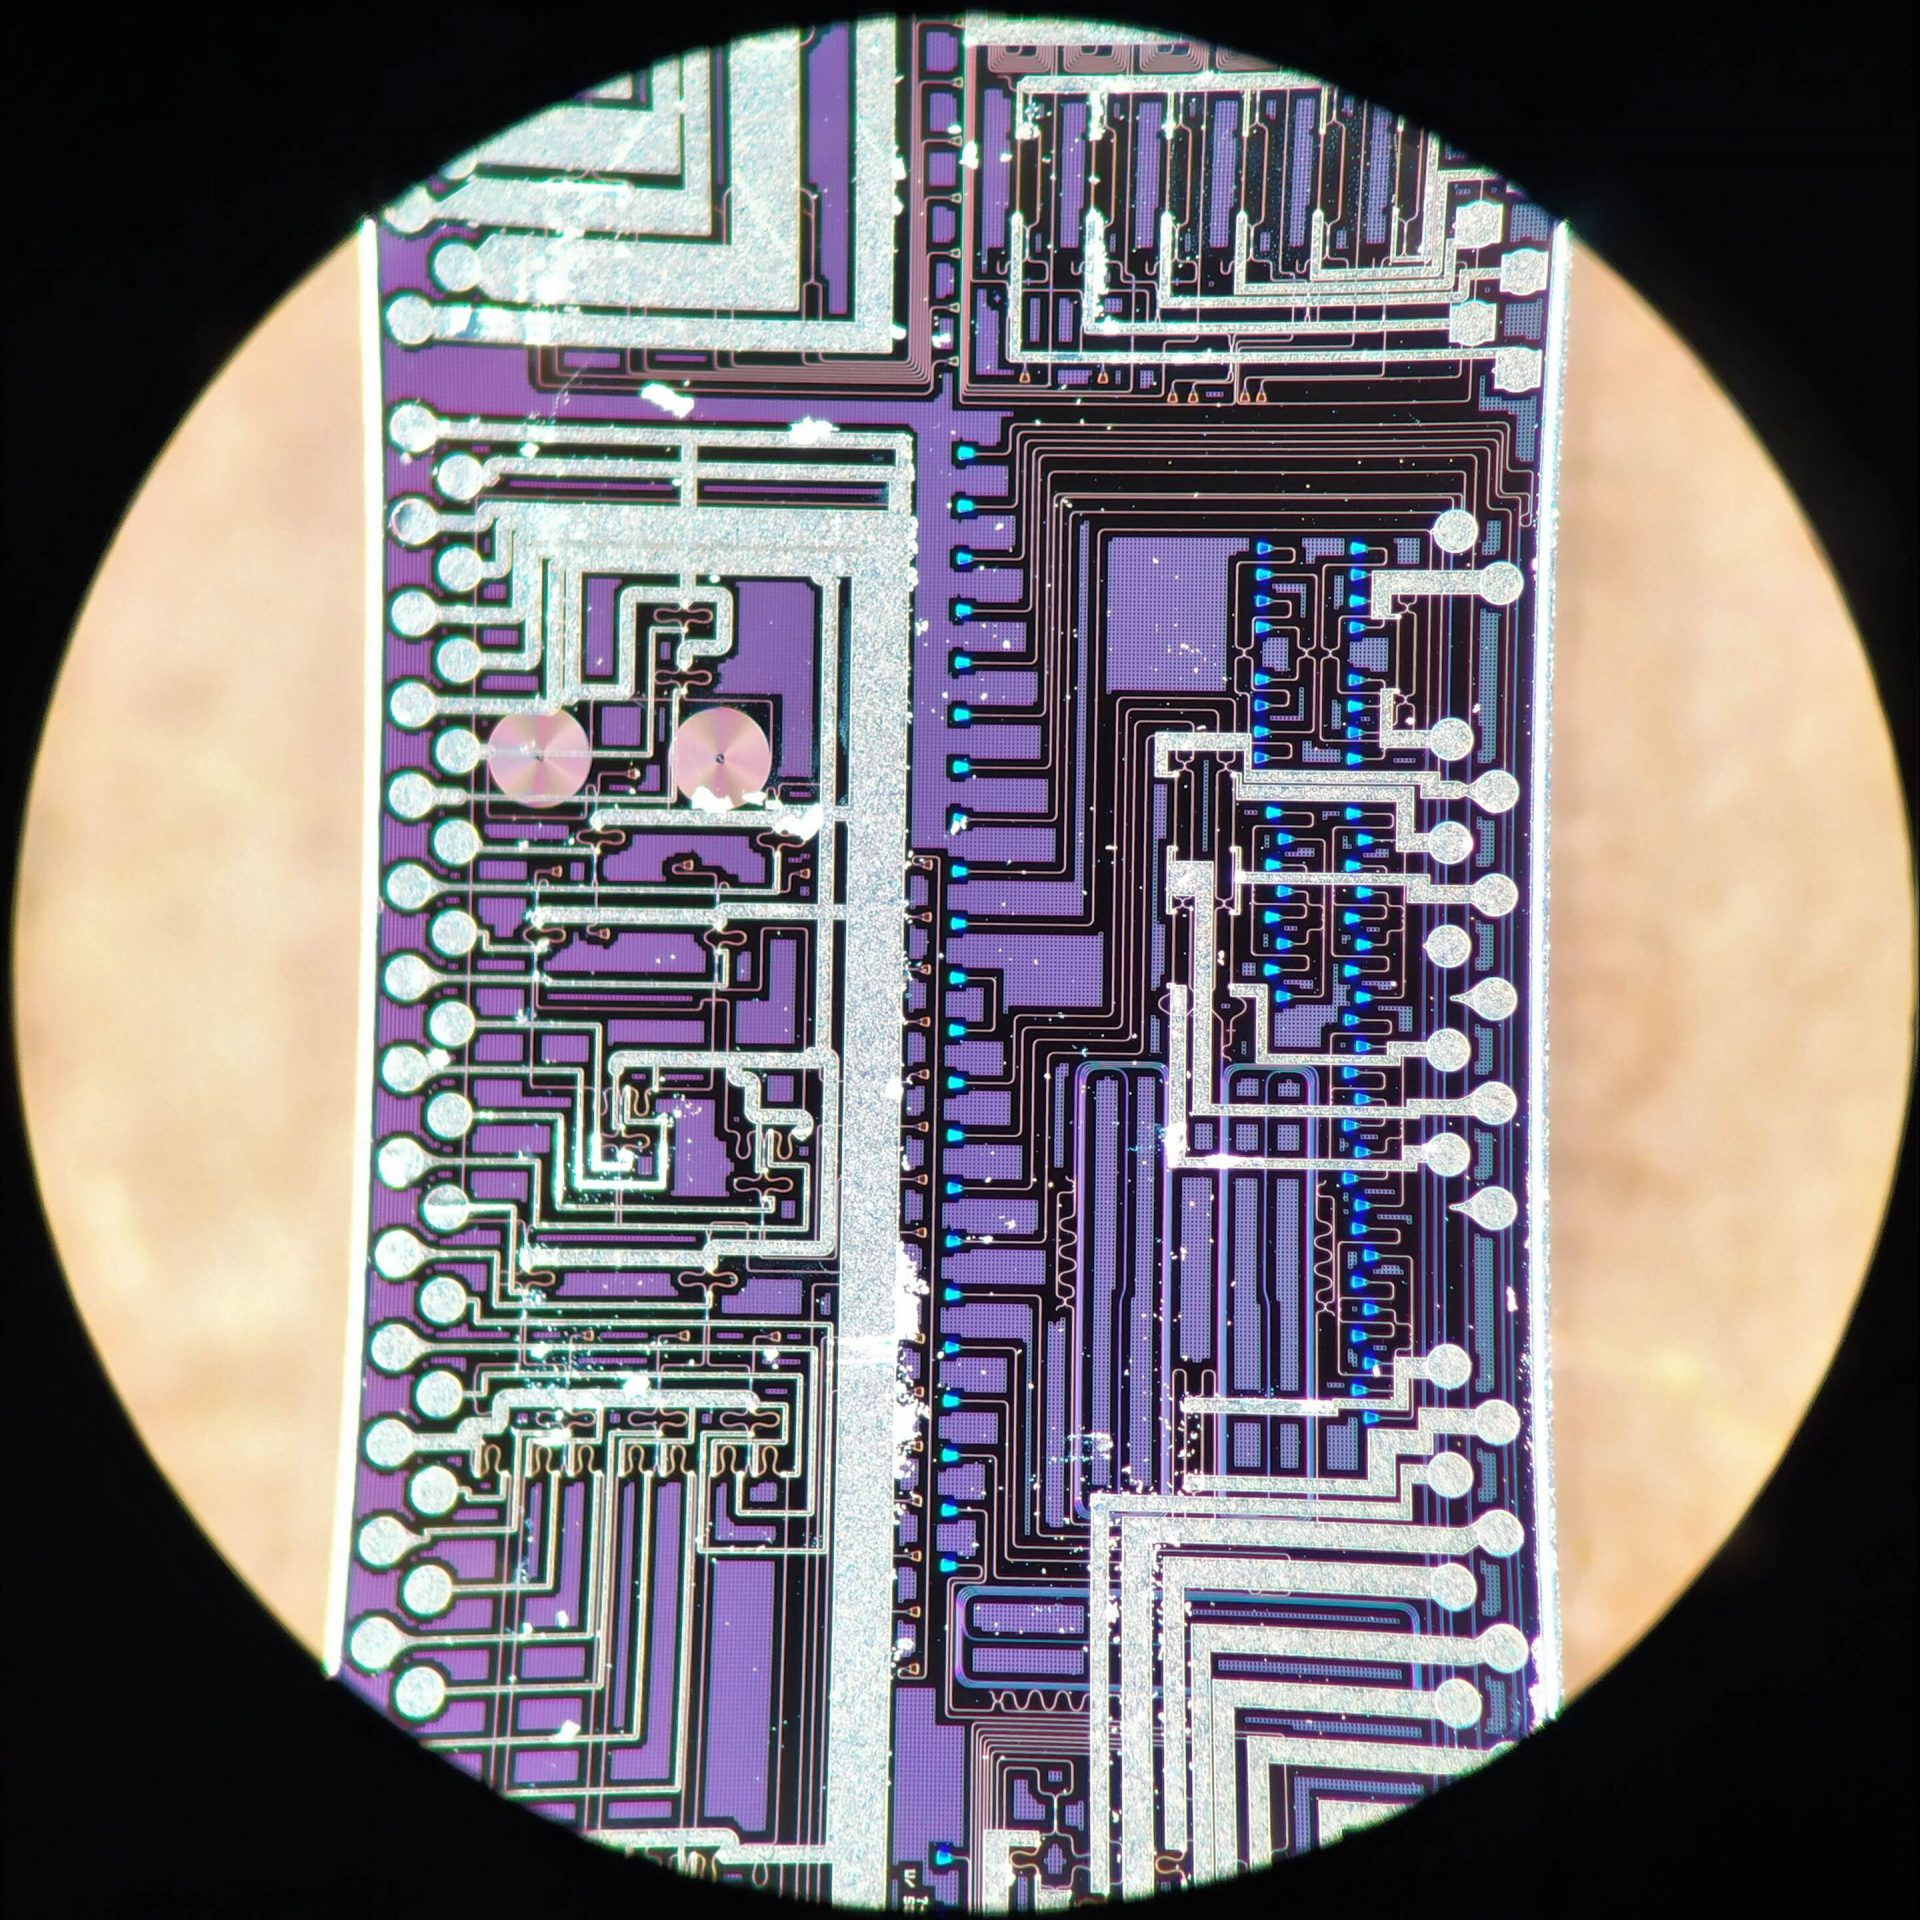 The silicon photonic chip used in this study to generate and interfere high-quality photons. Credit: University of Bristol